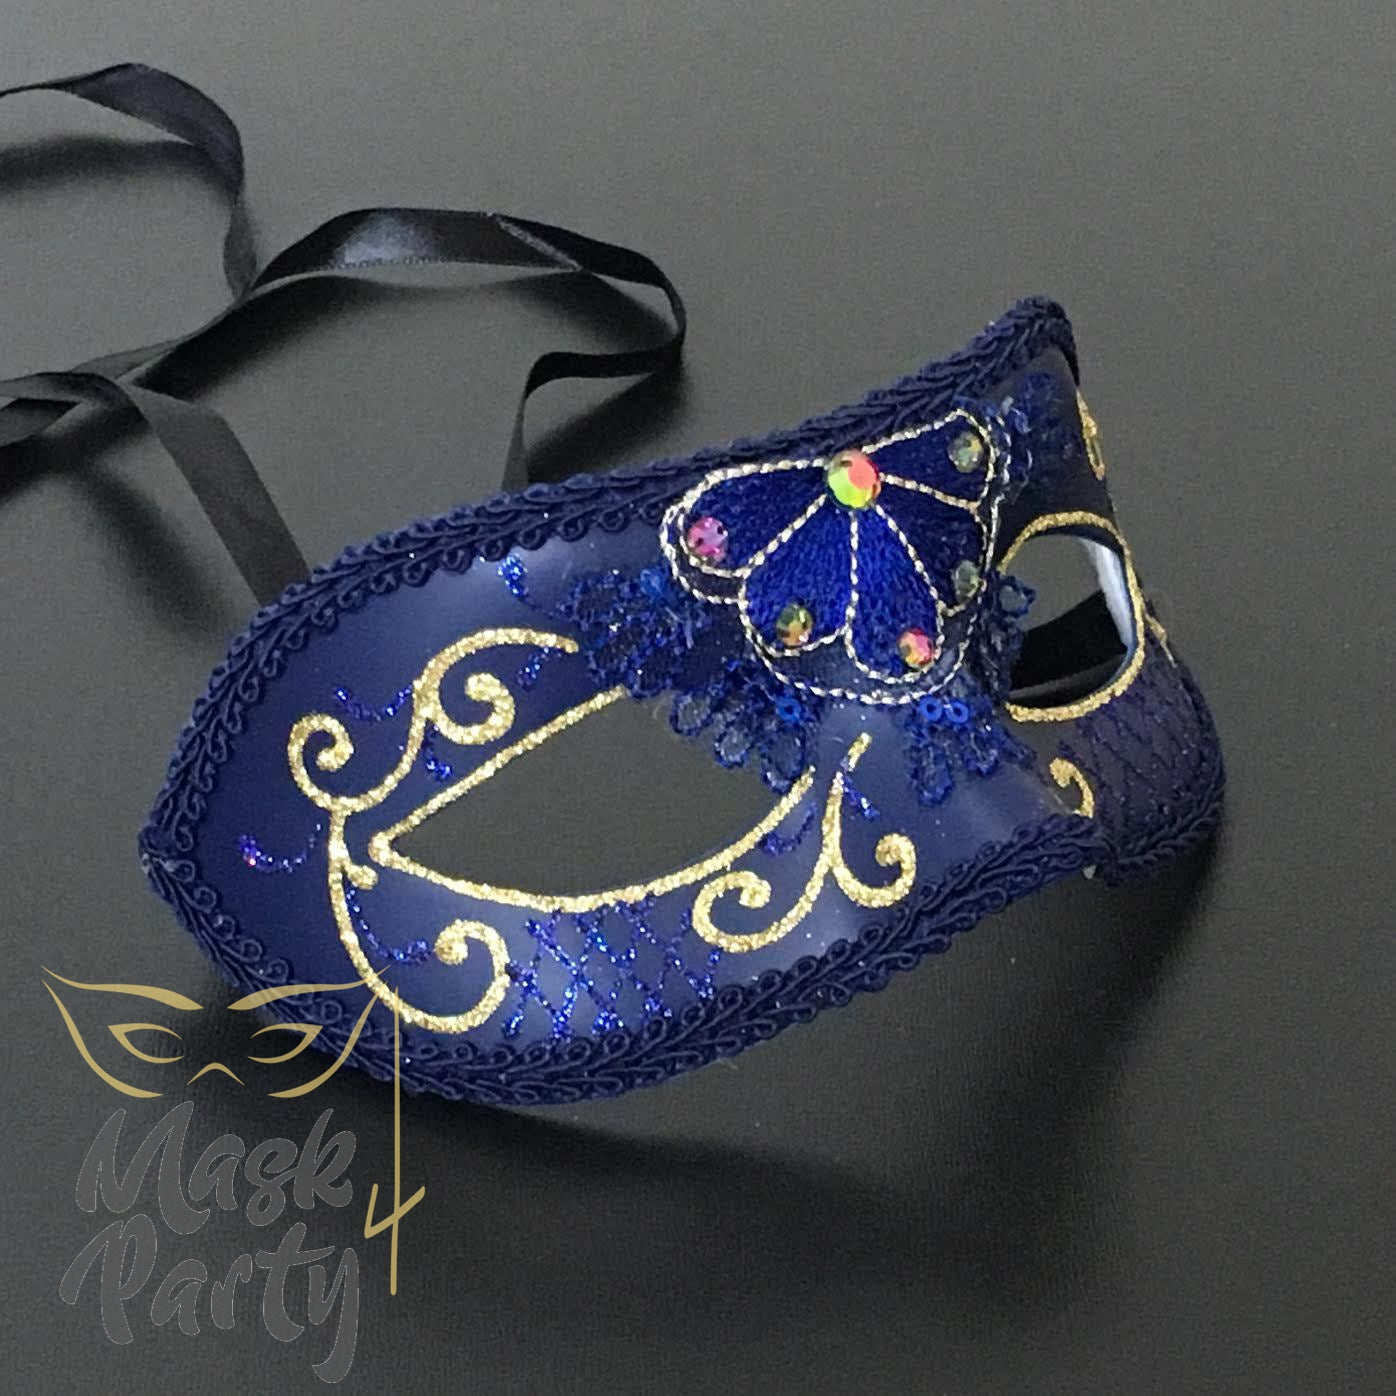 New - Masquerade Mask - Lace & Rhinestones Venetian Eye - Blue